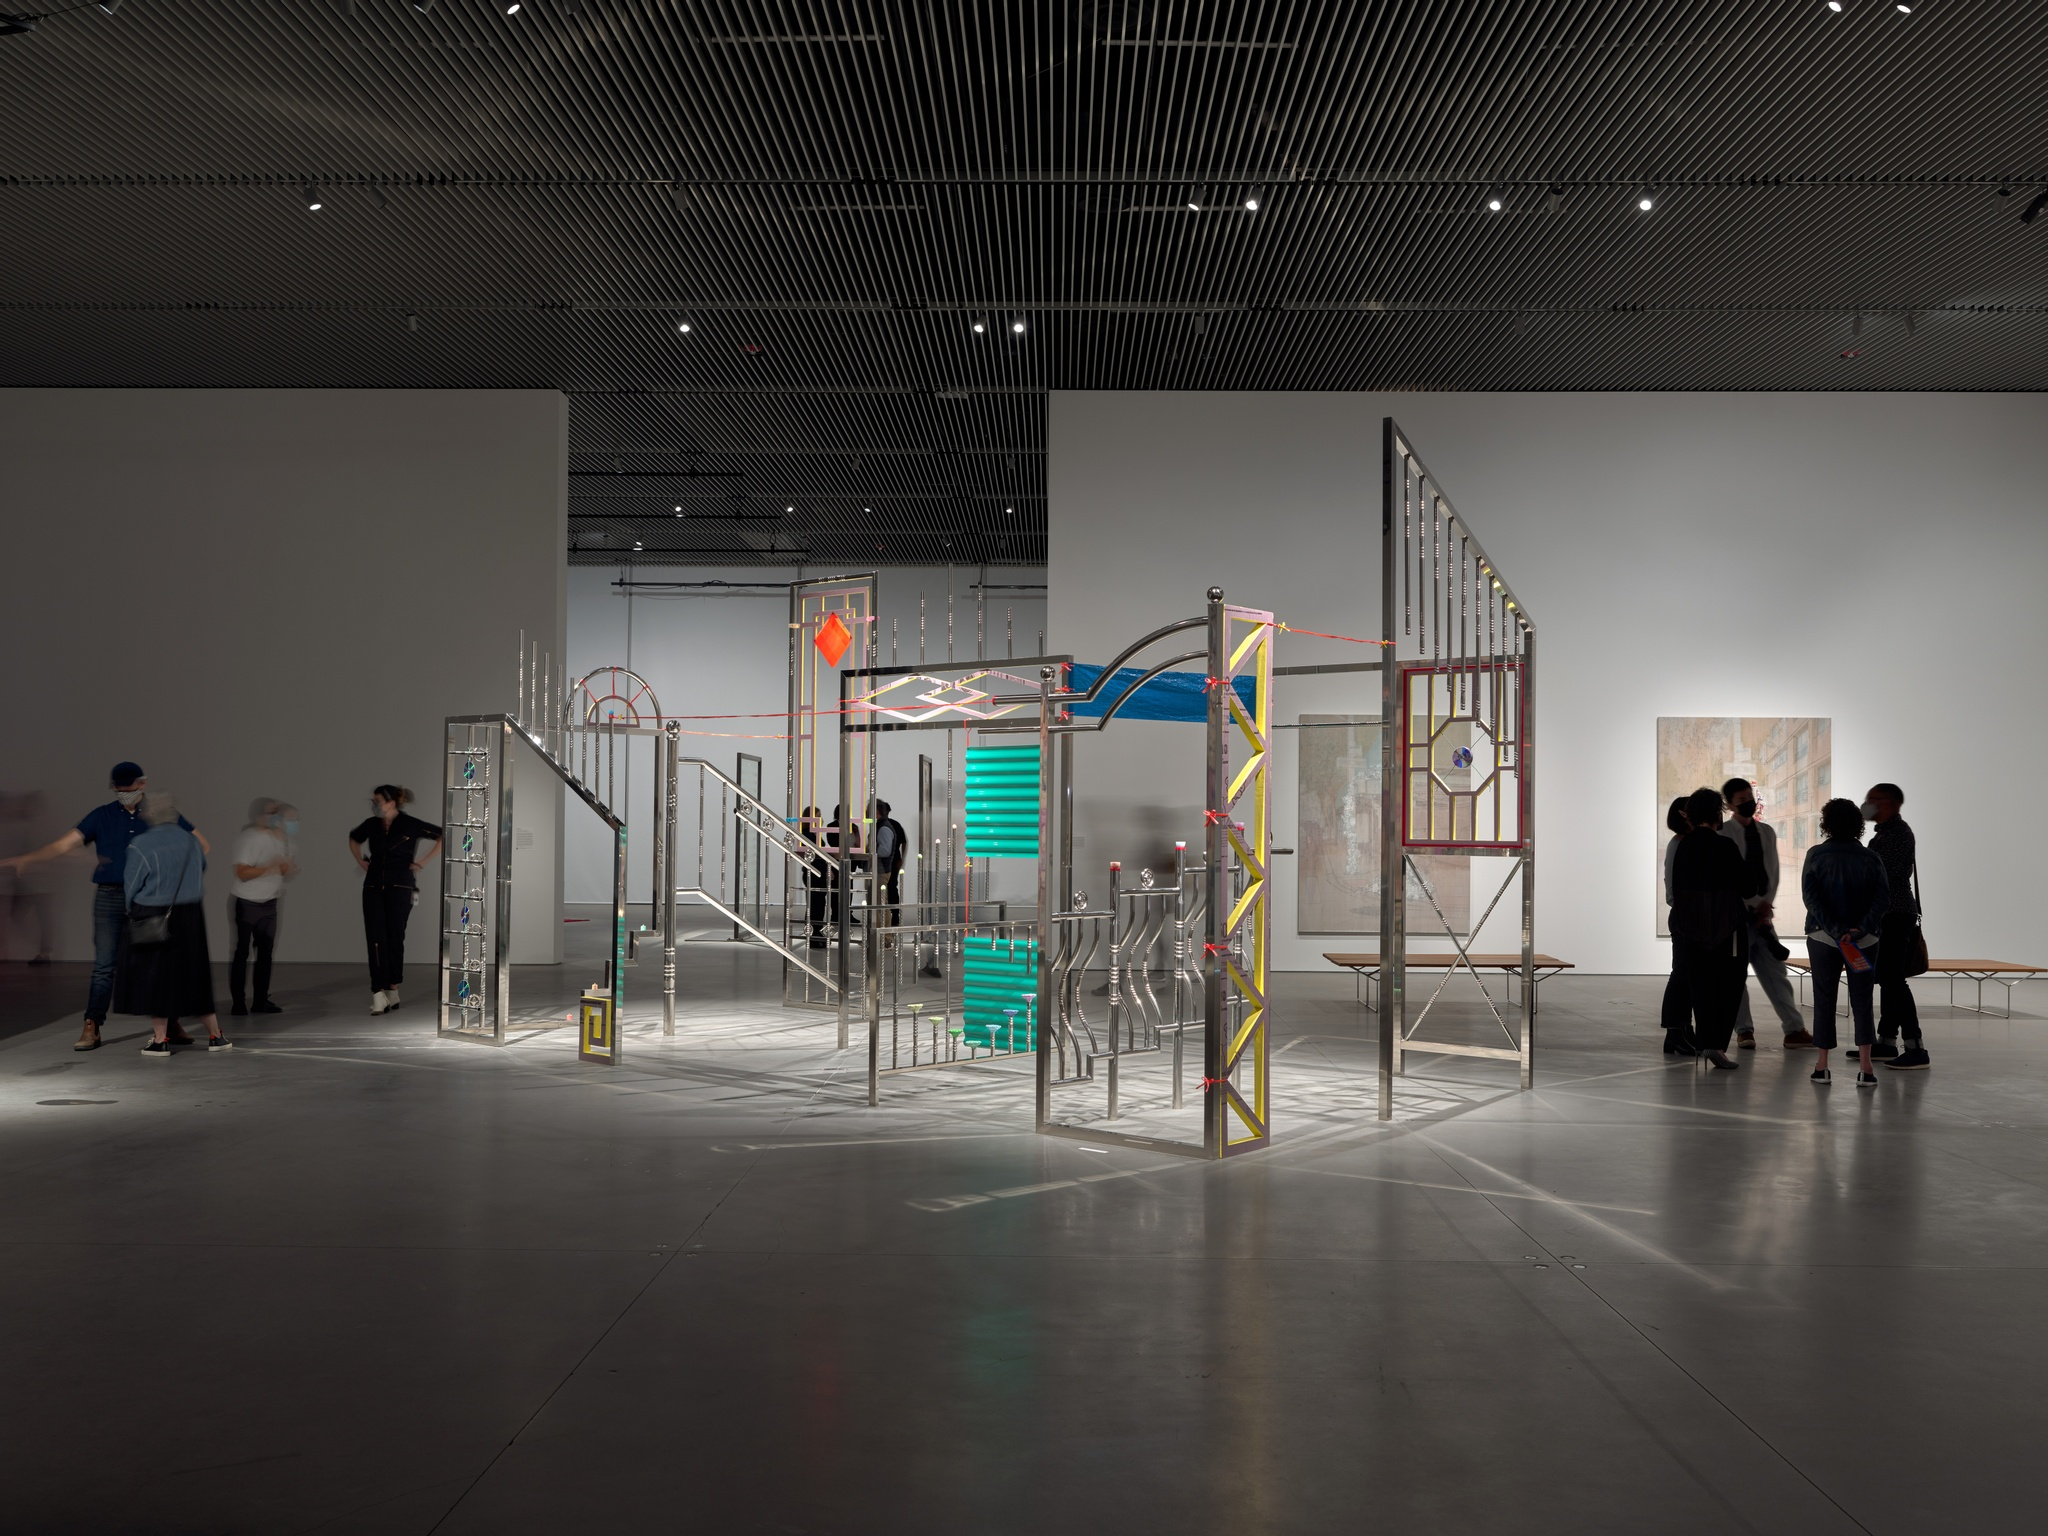 In a sparse gallery, large stainless steel rods are tack welded to resemble staircases, doorways, and windows, complete with architectural decorations. The majority of the sculpture is silver, though some of the decorative motifs are yellow, pink, orange, purple, or blue. About a dozen gallery-goers stand next to and behind the installation.